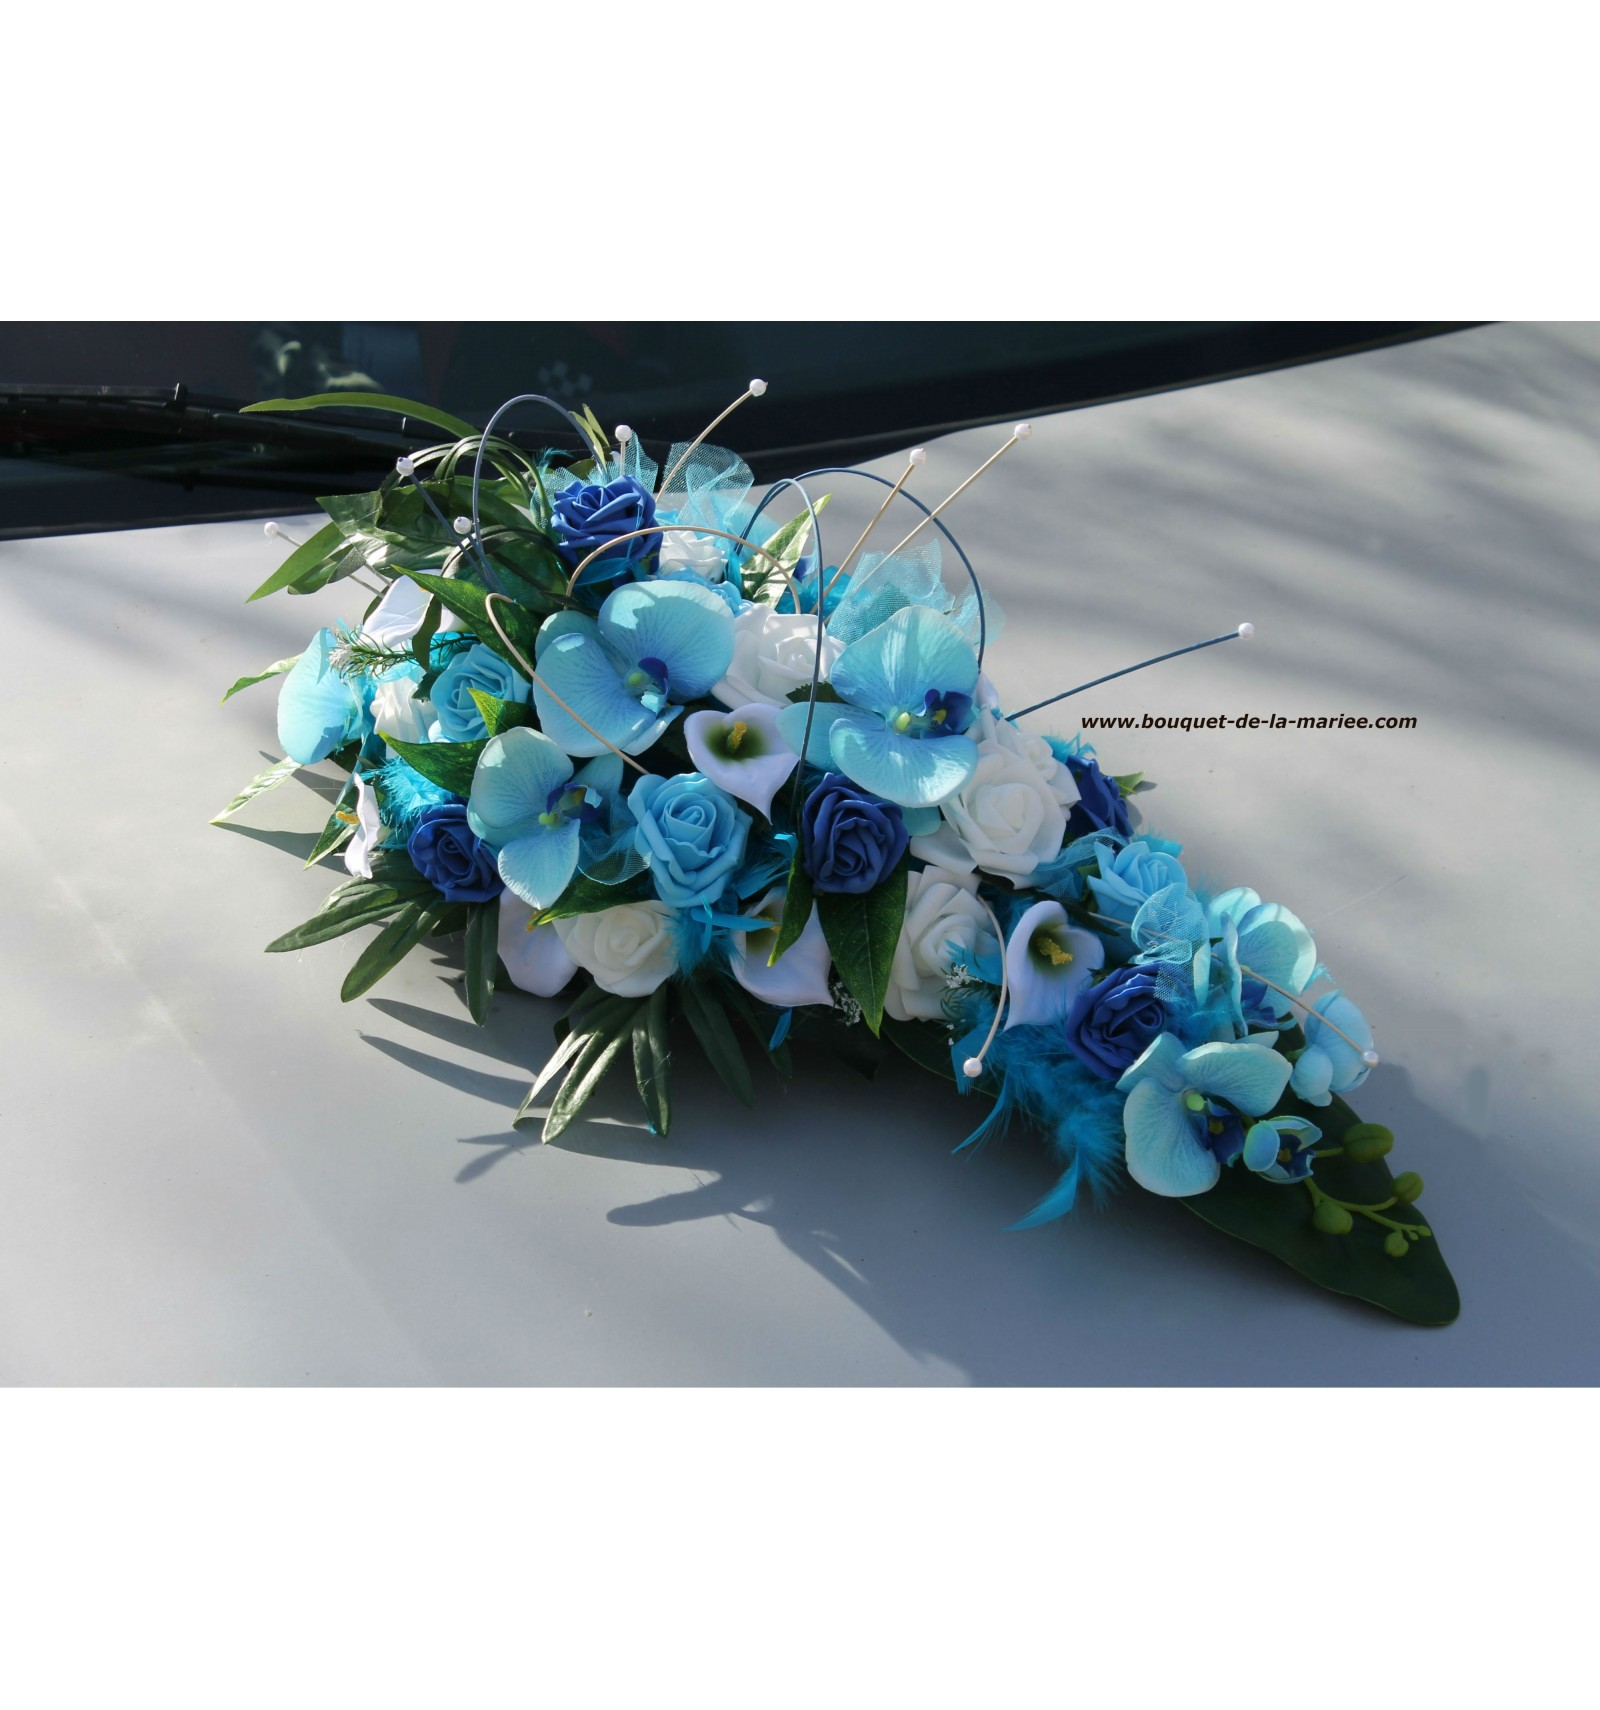 decoration voiture mariage turquoise